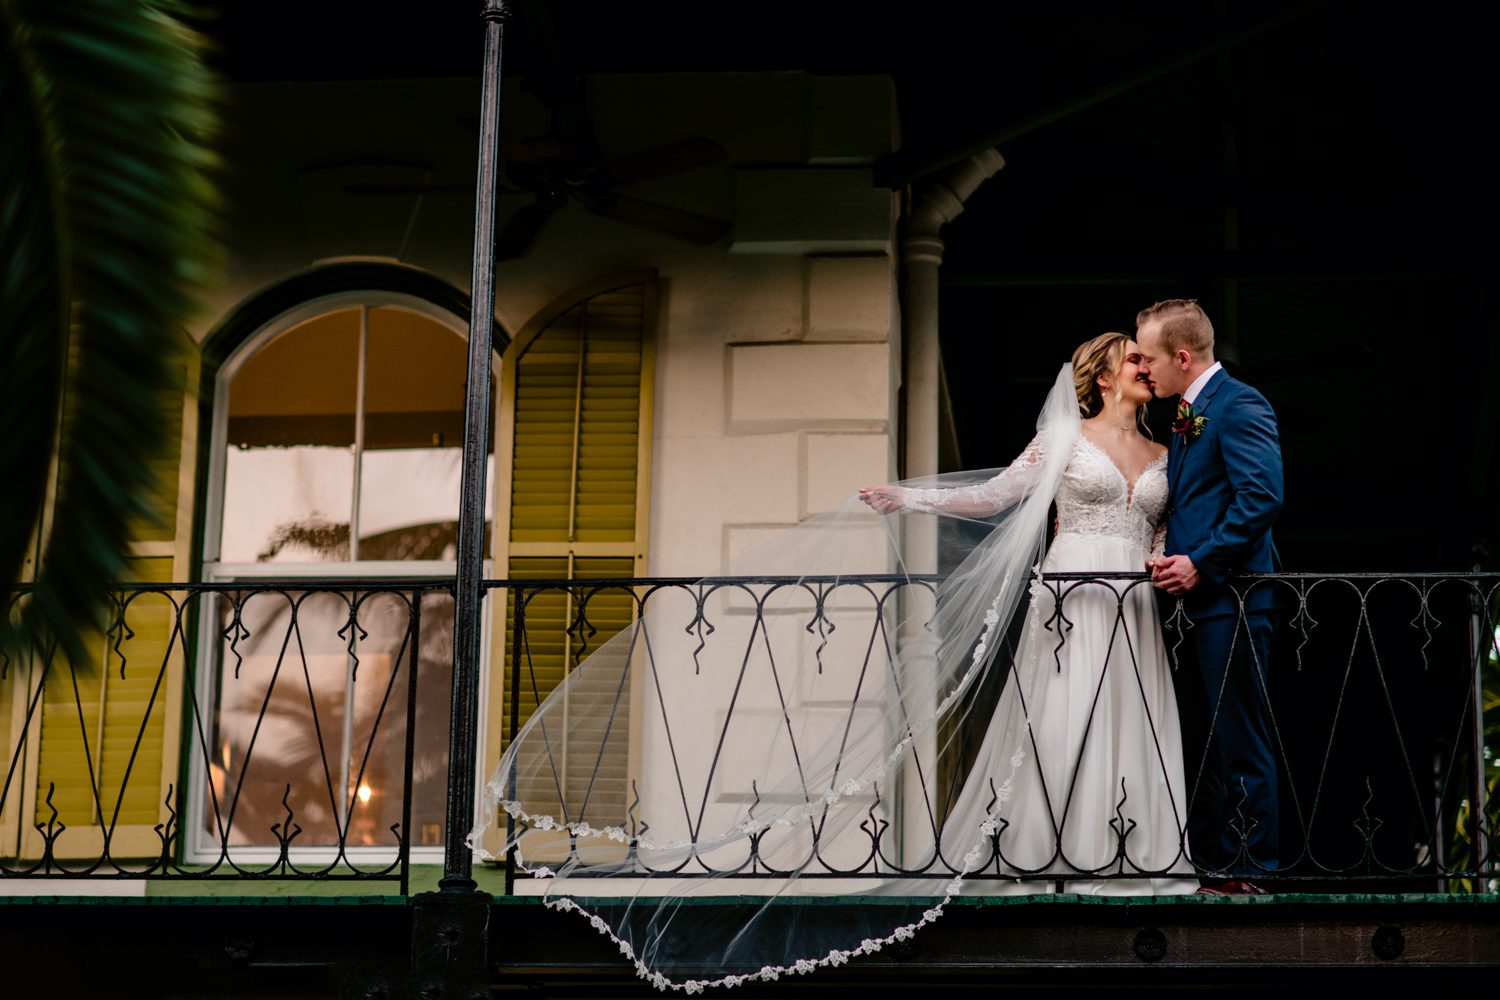 Bride and groom taking a portrait leaning against railing at hemingway house